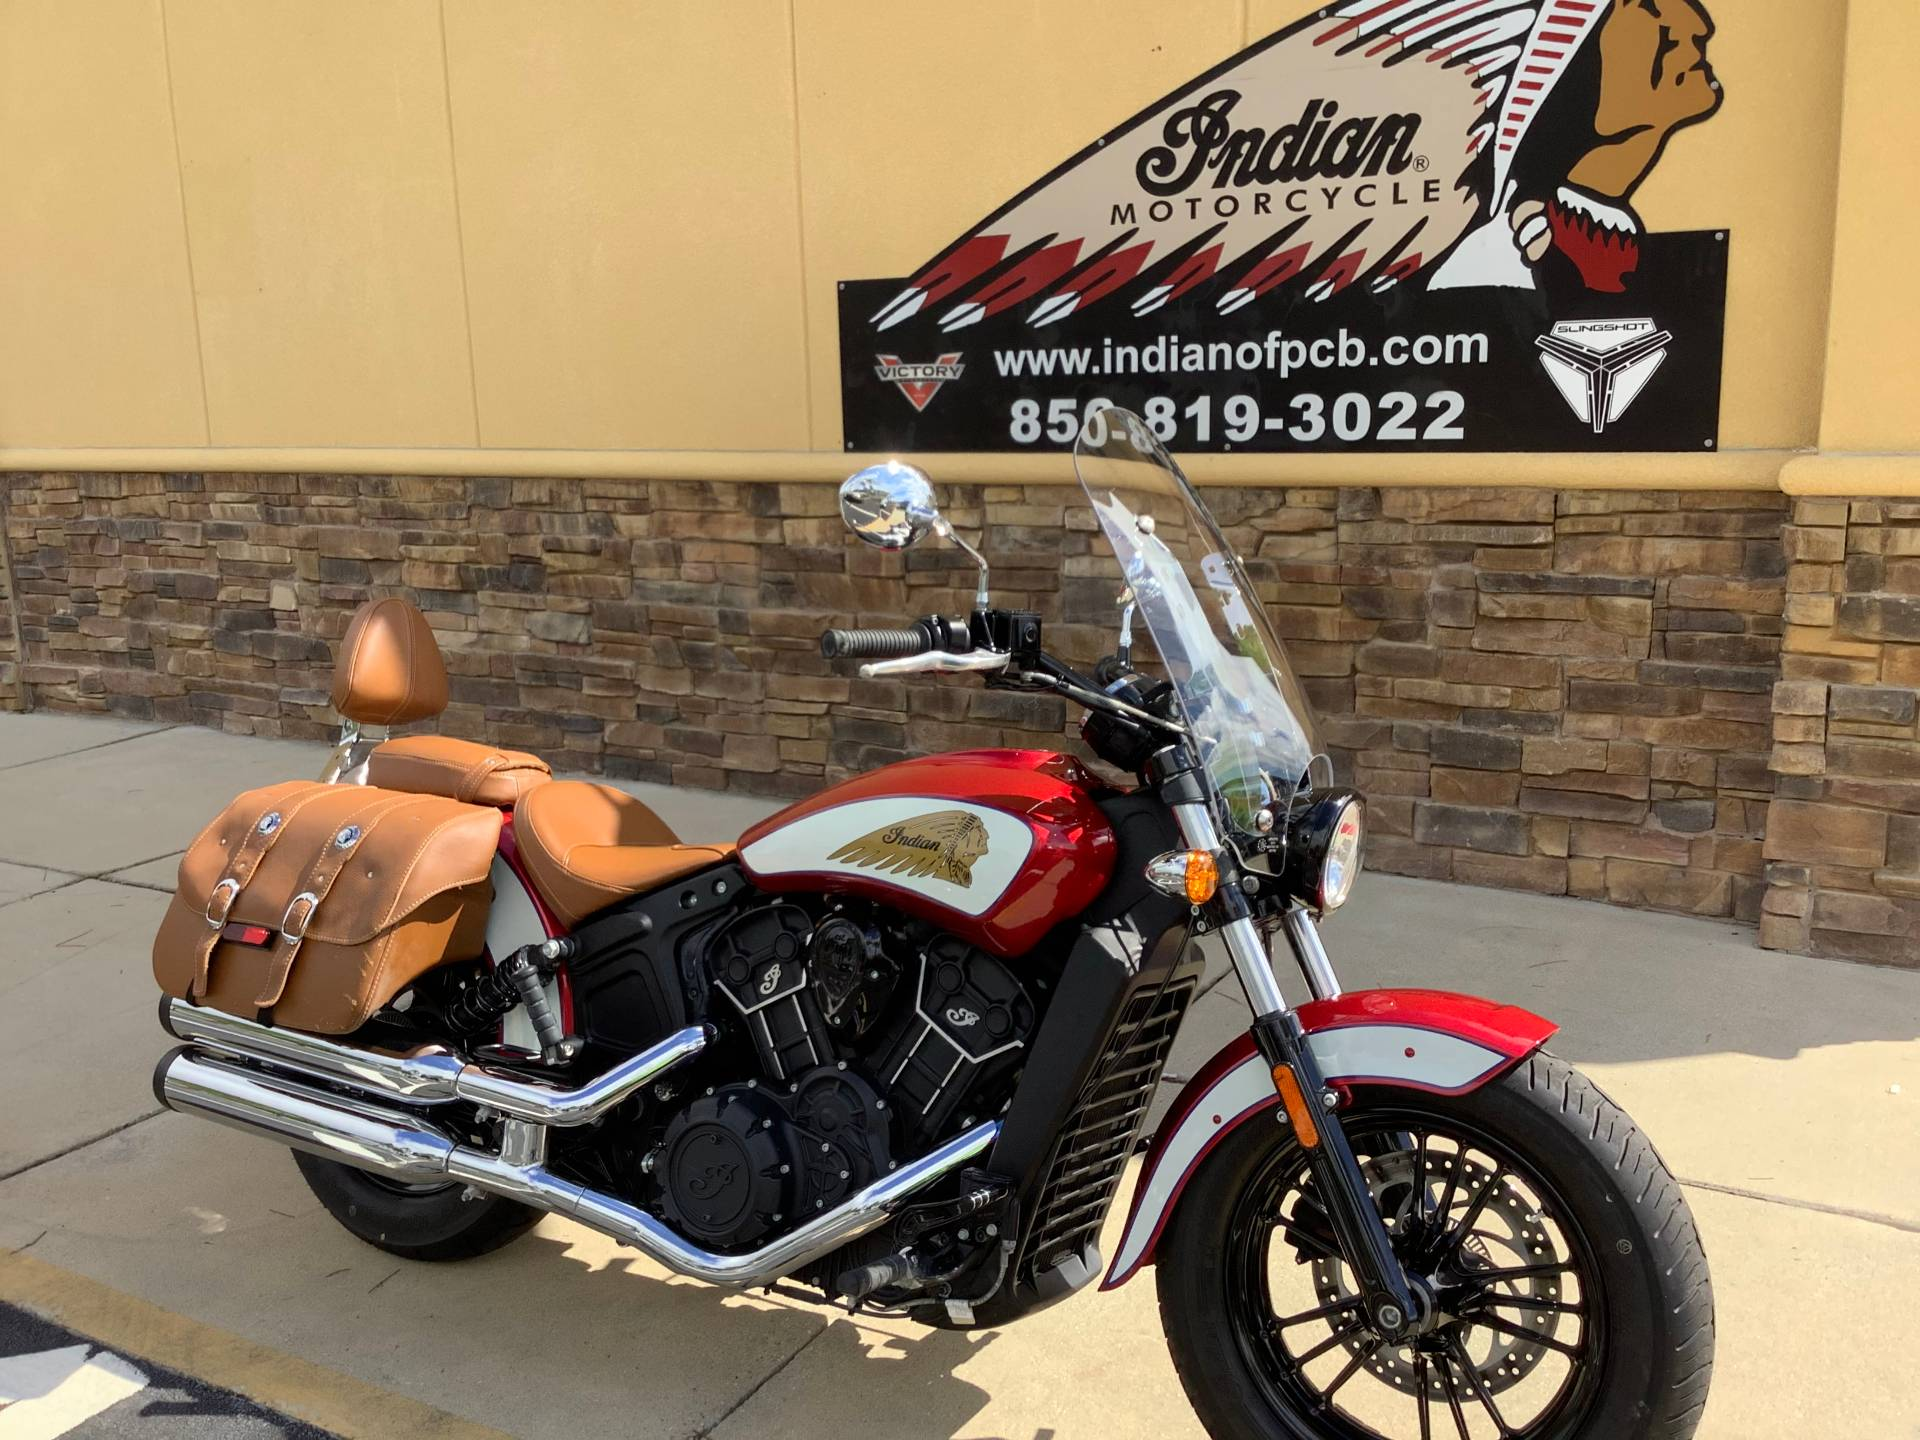 2019 Indian SCOUT SIXTY ICON in Panama City Beach, Florida - Photo 2